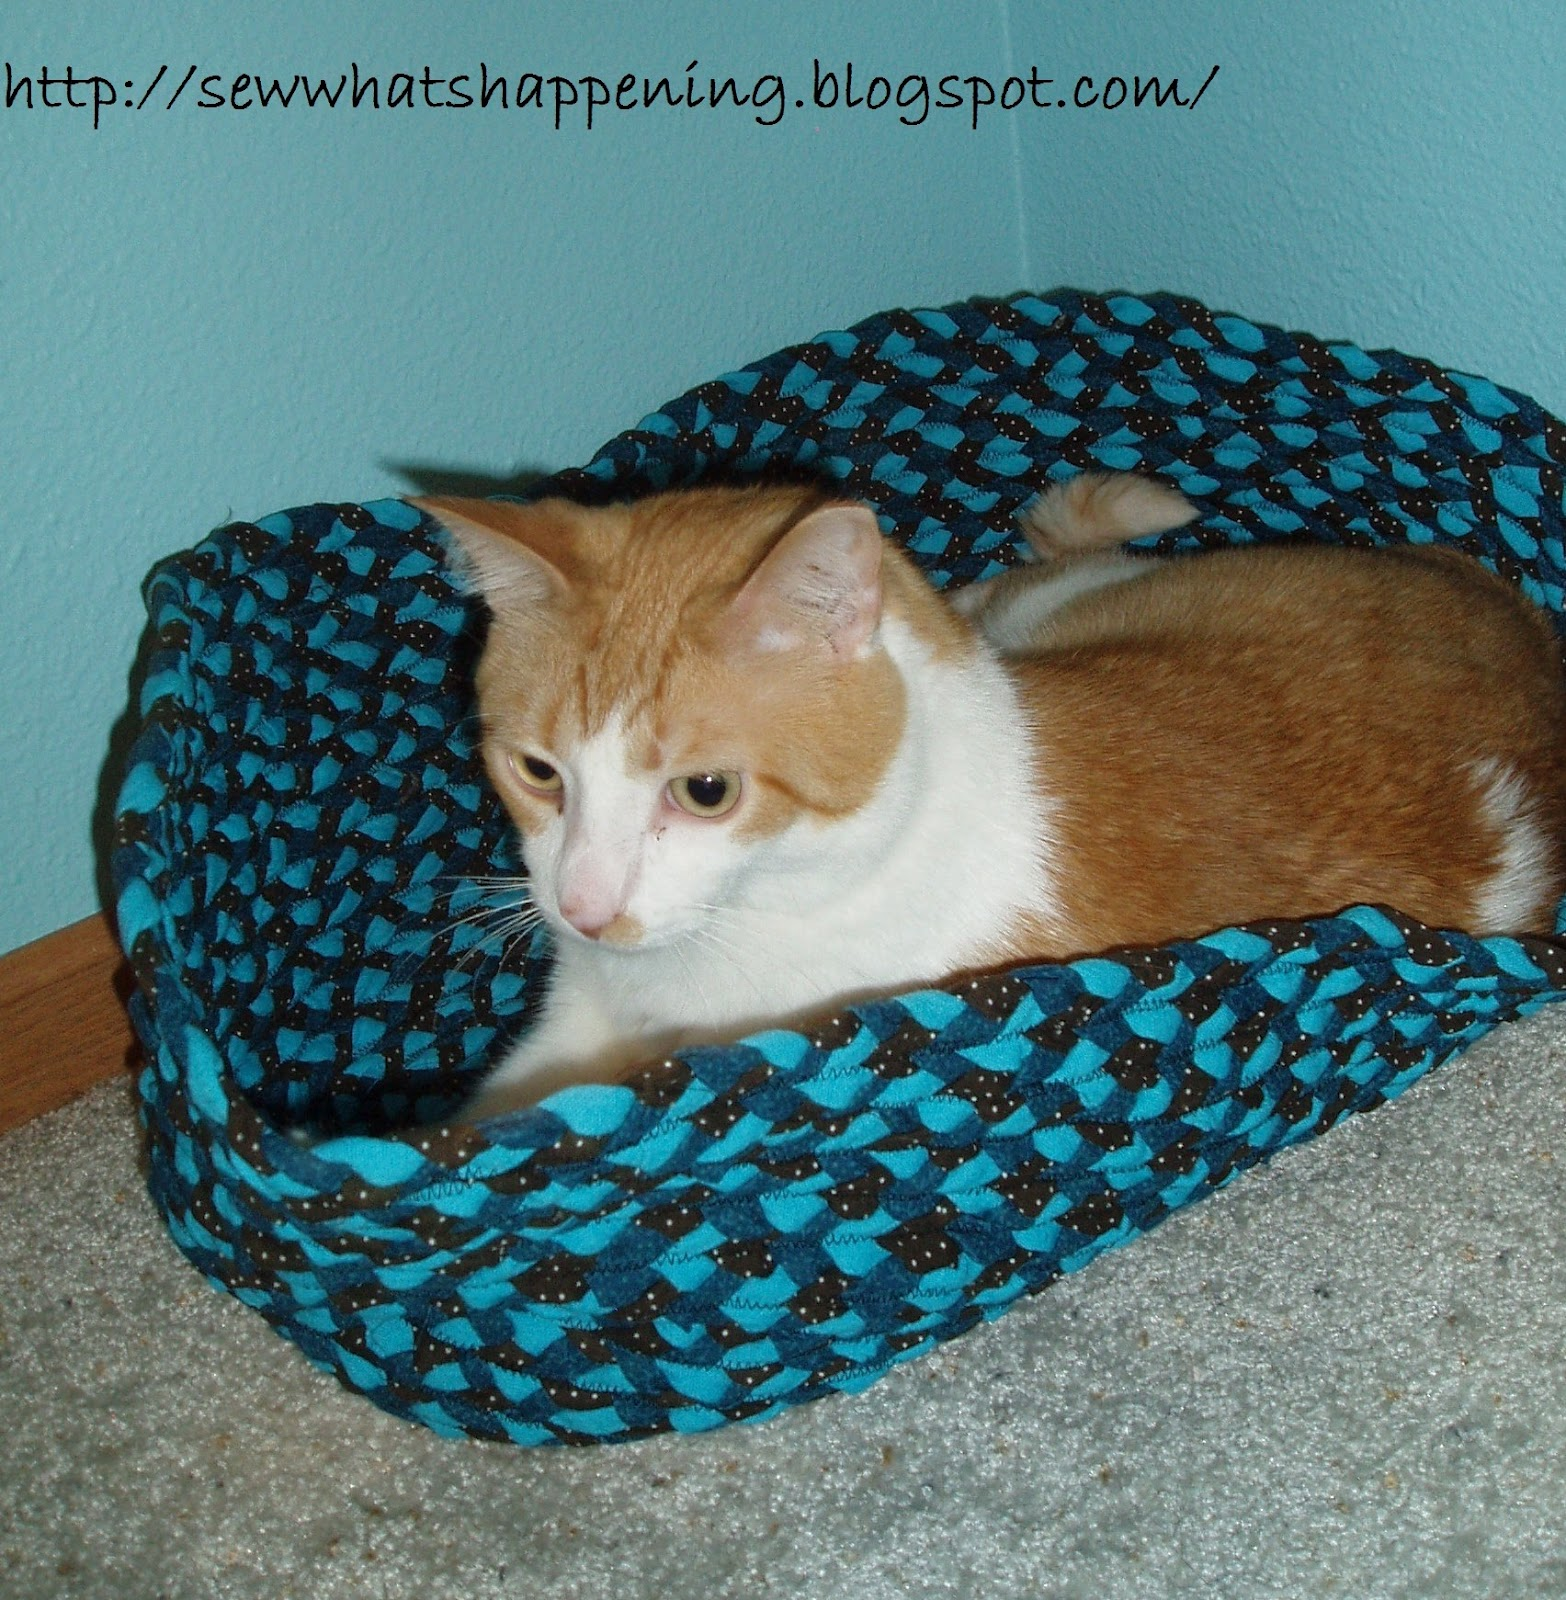 Dog Chewed Up Rug: Sew What's Happening?: Braided Pet Bed